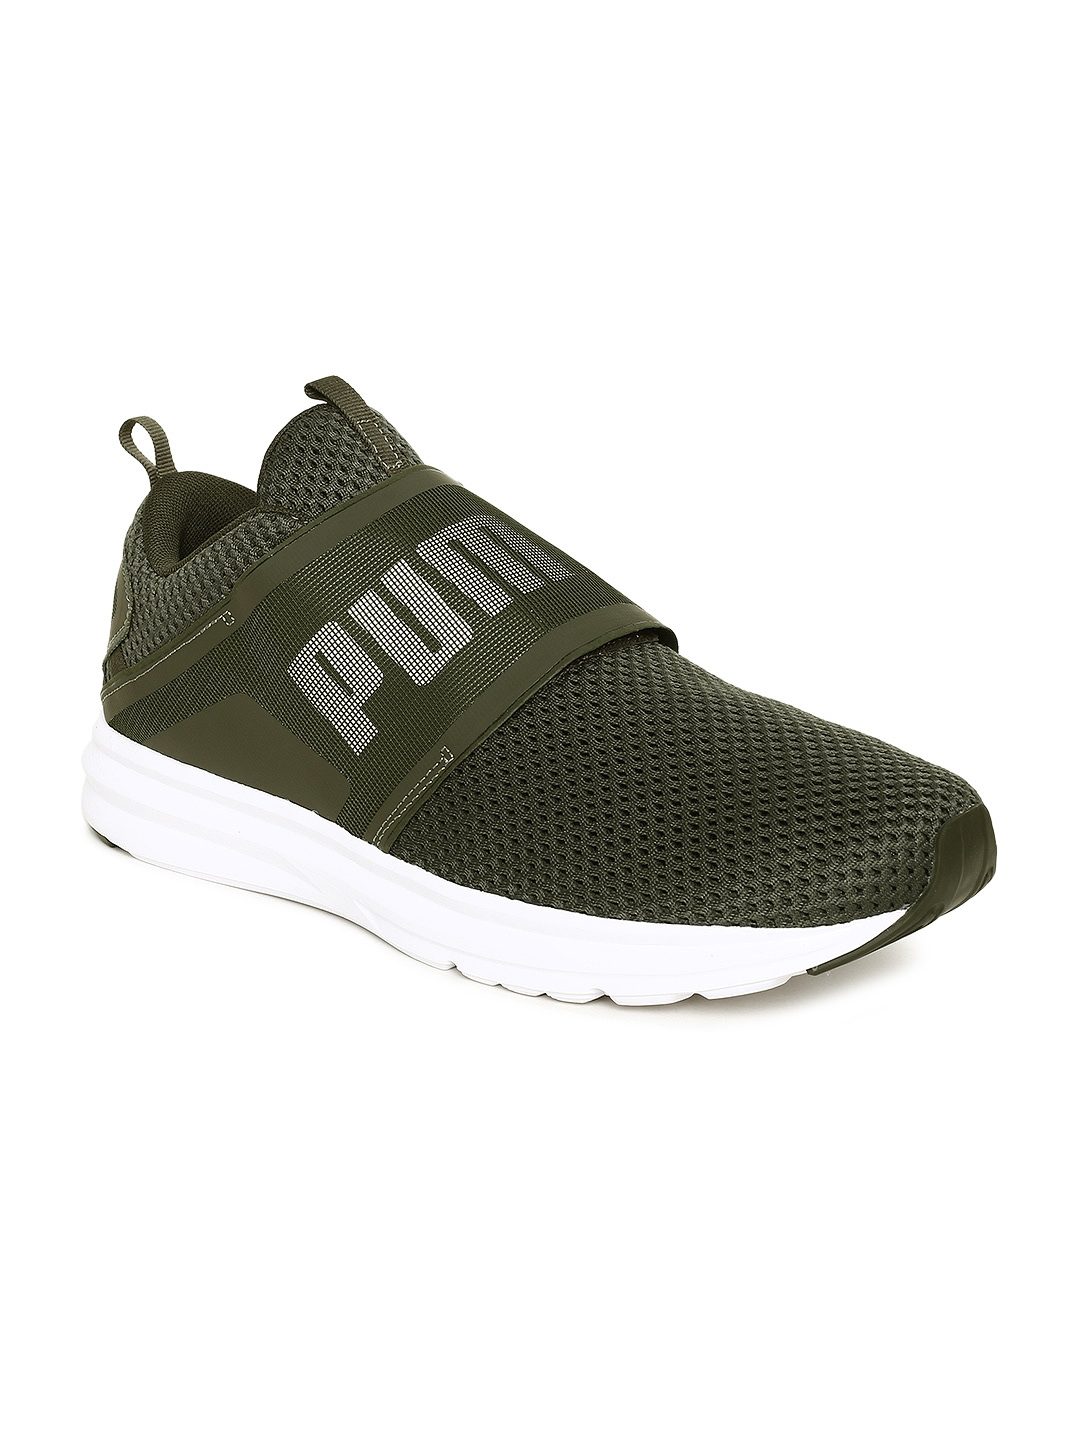 abbb7d9af0e28d Buy Puma Men Olive Green Enzo Strap Mesh Training Shoes - Sports ...